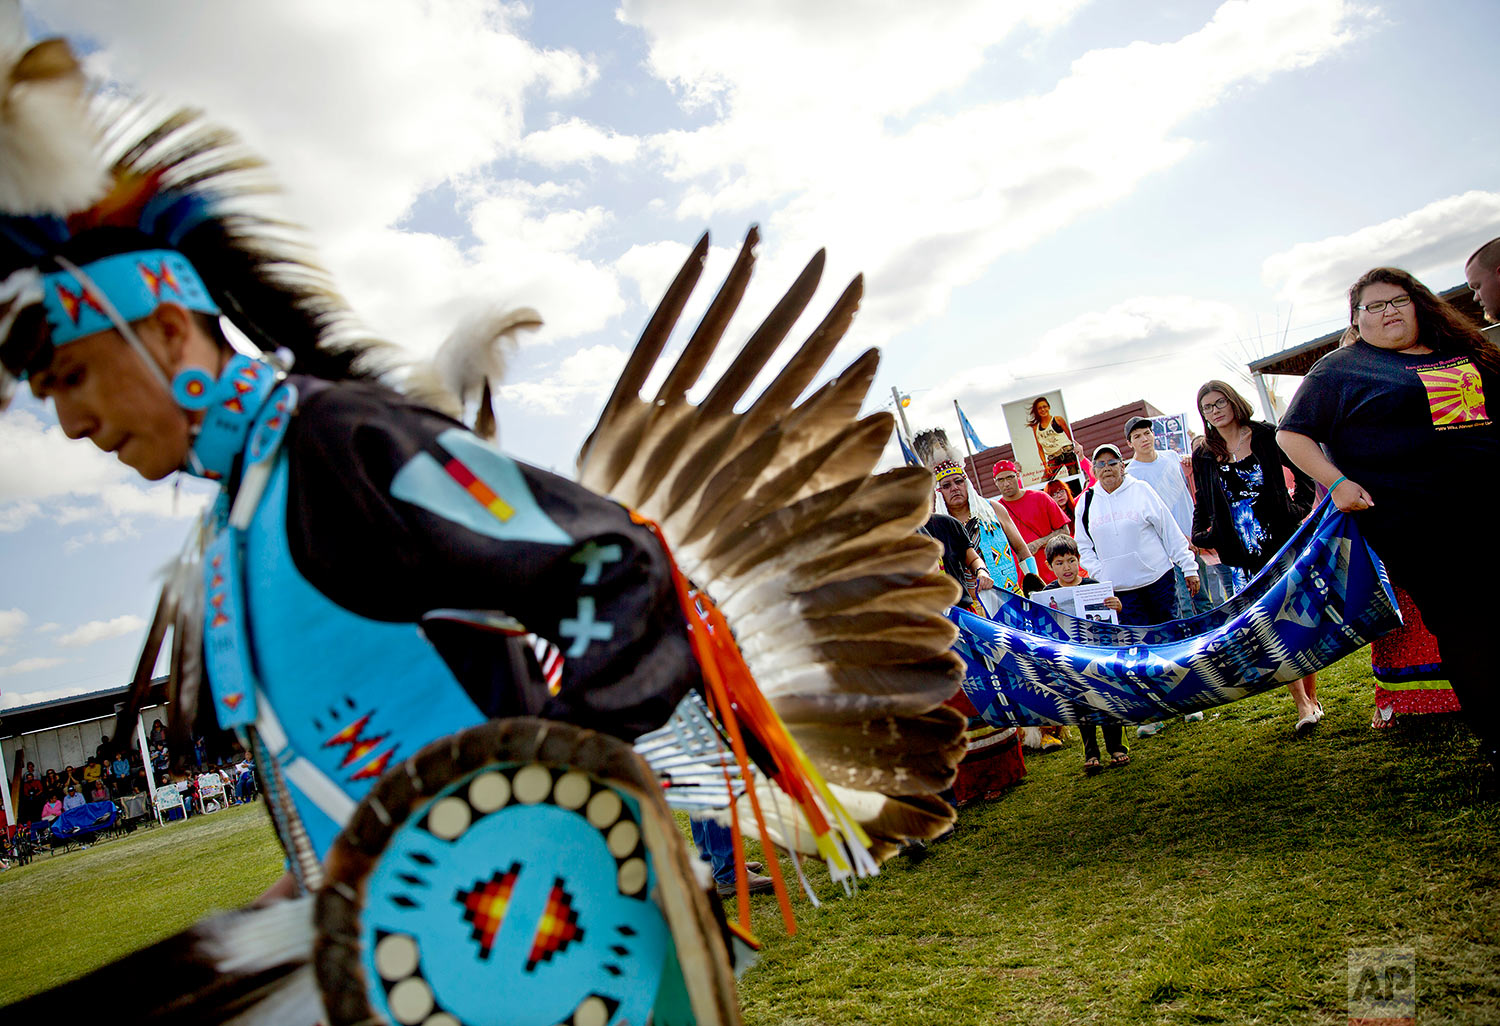 Friends and family members of Ashley HeavyRunner Loring hold a traditional blanket dance before the crowd at the North American Indian Days celebration to raise awareness and funds for her search on the Blackfeet Indian Reservation in Browning, Mont.,July 14, 2018. (AP Photo/David Goldman)